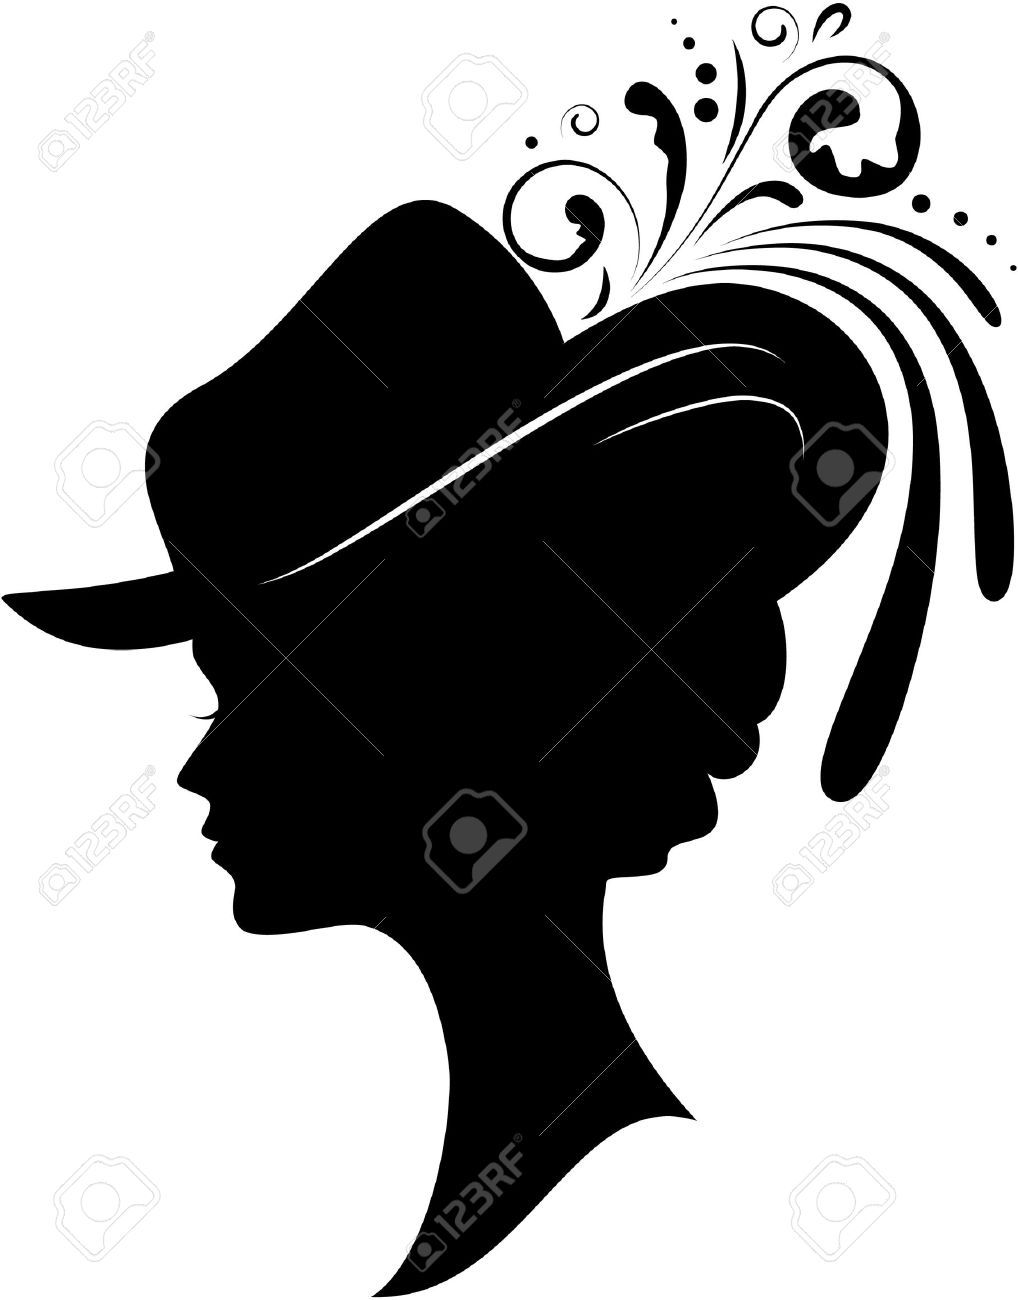 Image result for woman with hat silhouette | Frau mit hut ...